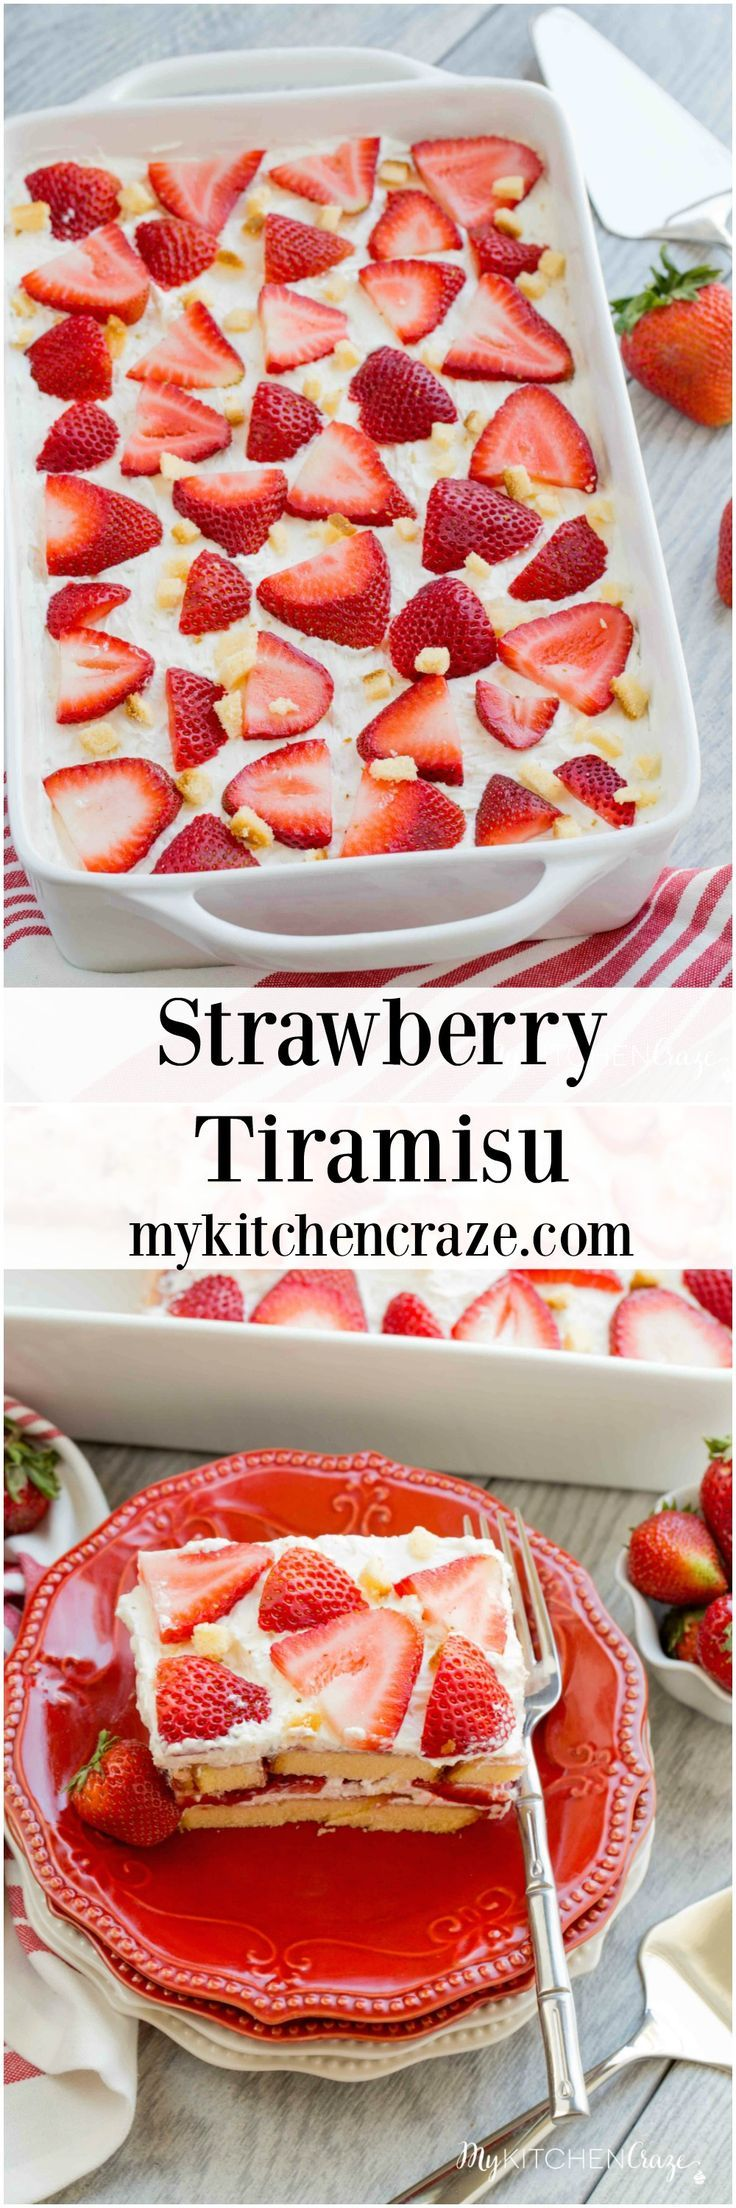 Strawberry Tiramisu ~ Enjoy this delicious and fun twist on tiramisu! Loaded with strawberries, pound cake, mascarpone cheese and cool whip. This is one dessert you won't be able to pass up!